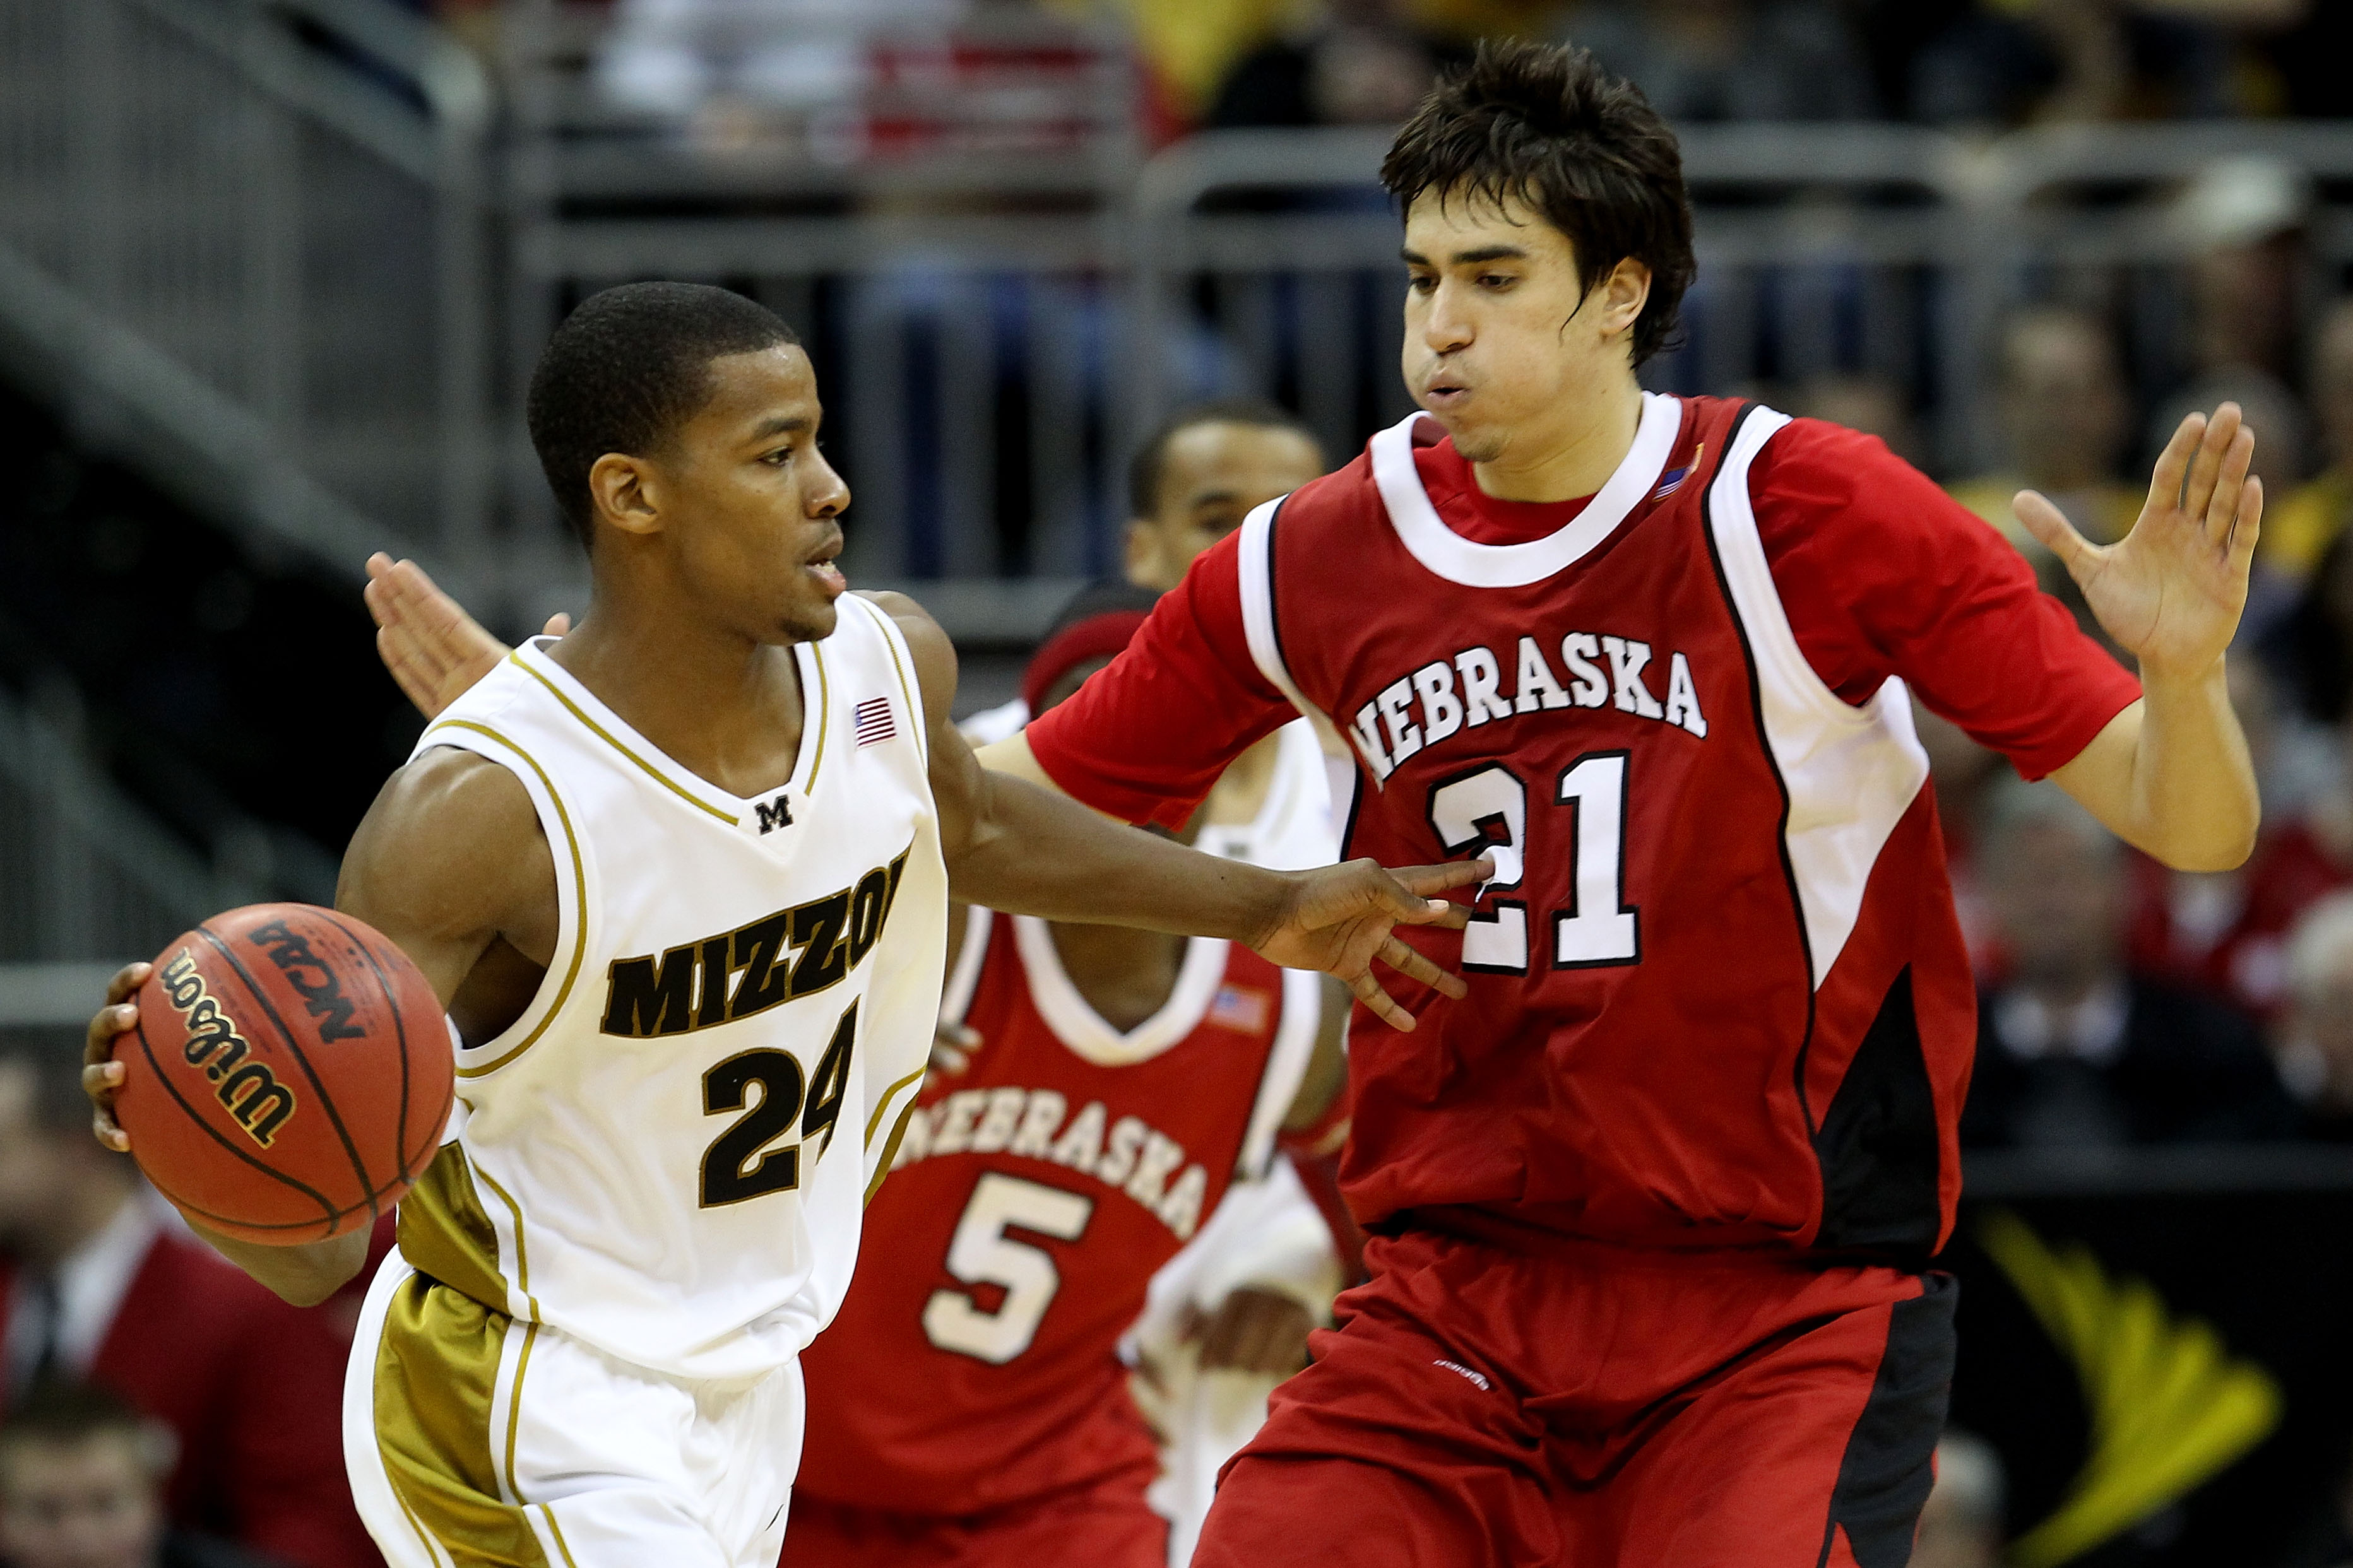 KANSAS CITY, MO - MARCH 10:  Kim English #24 of the Missouri Tigers looks to pass the ball as he is guarded by Jorge Brian Diaz #21 of the Nebraska Cornhuskers in the second half during the first round game of the 2010 Phillips 66 Big 12 Men's Basketball